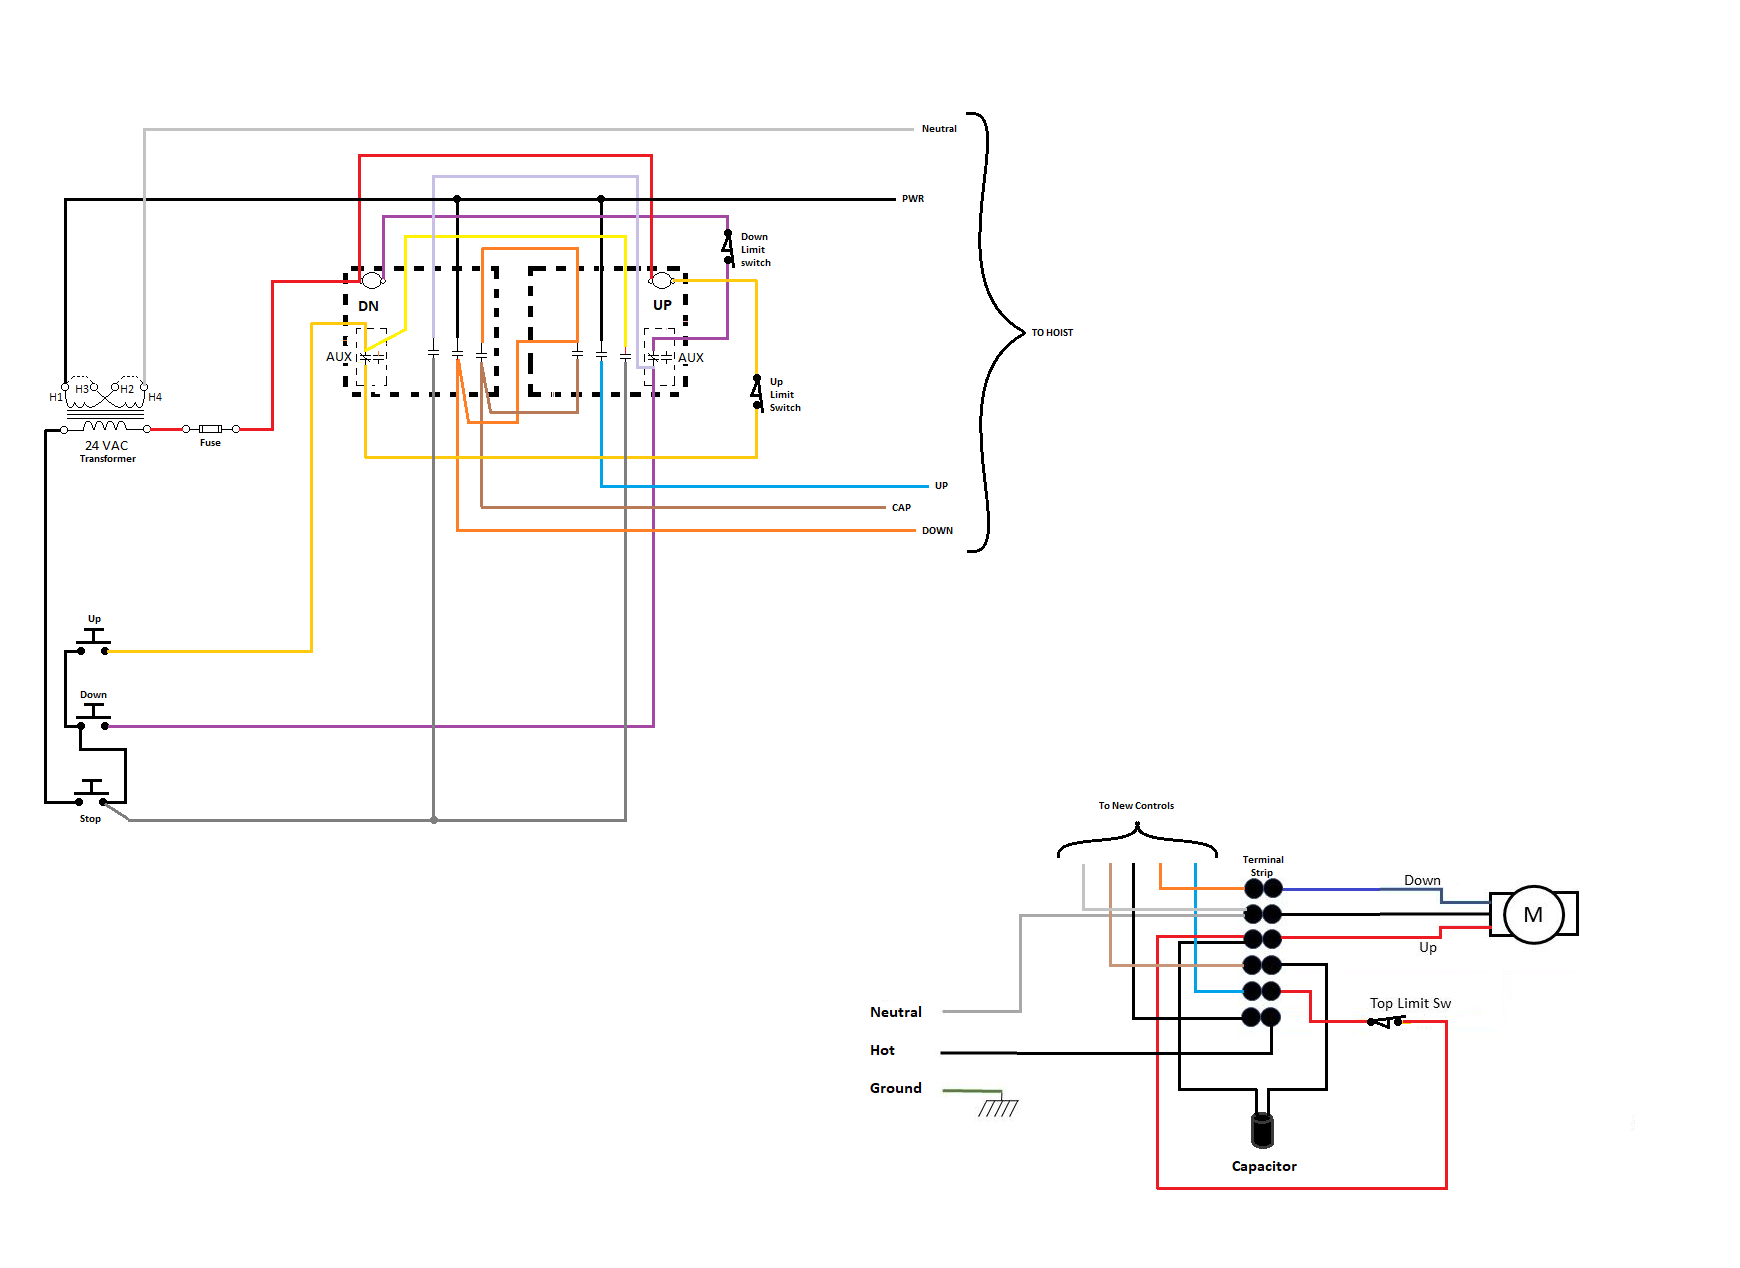 Pittsburgh Automotive Electric Hoist Wiring Diagram from f01.justanswer.com